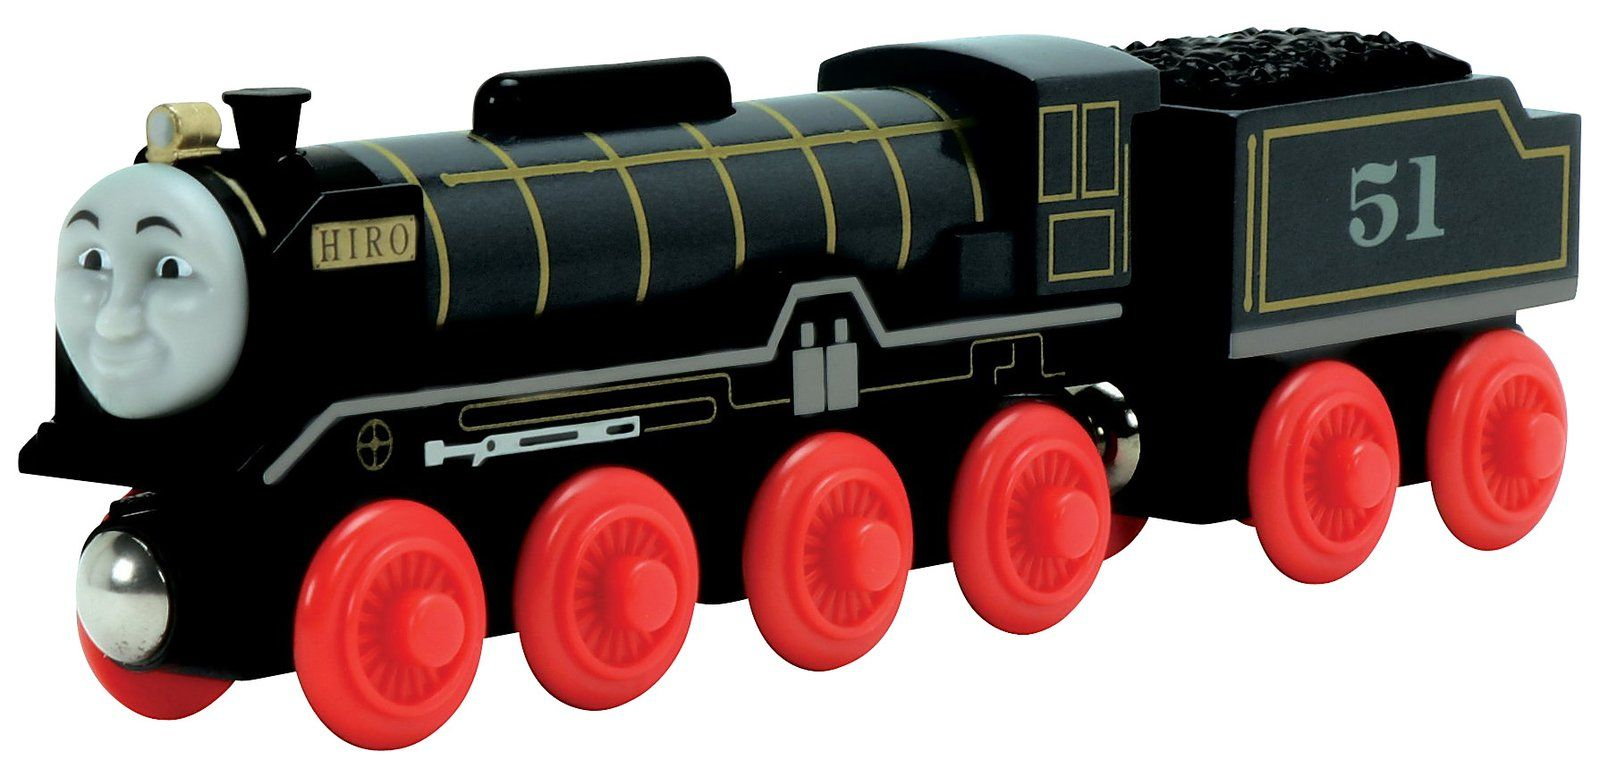 Learning Curve Thomas Friends Wooden Railway Hiro Engine Thomas And Friends Toy Trains For Kids Thomas The Train